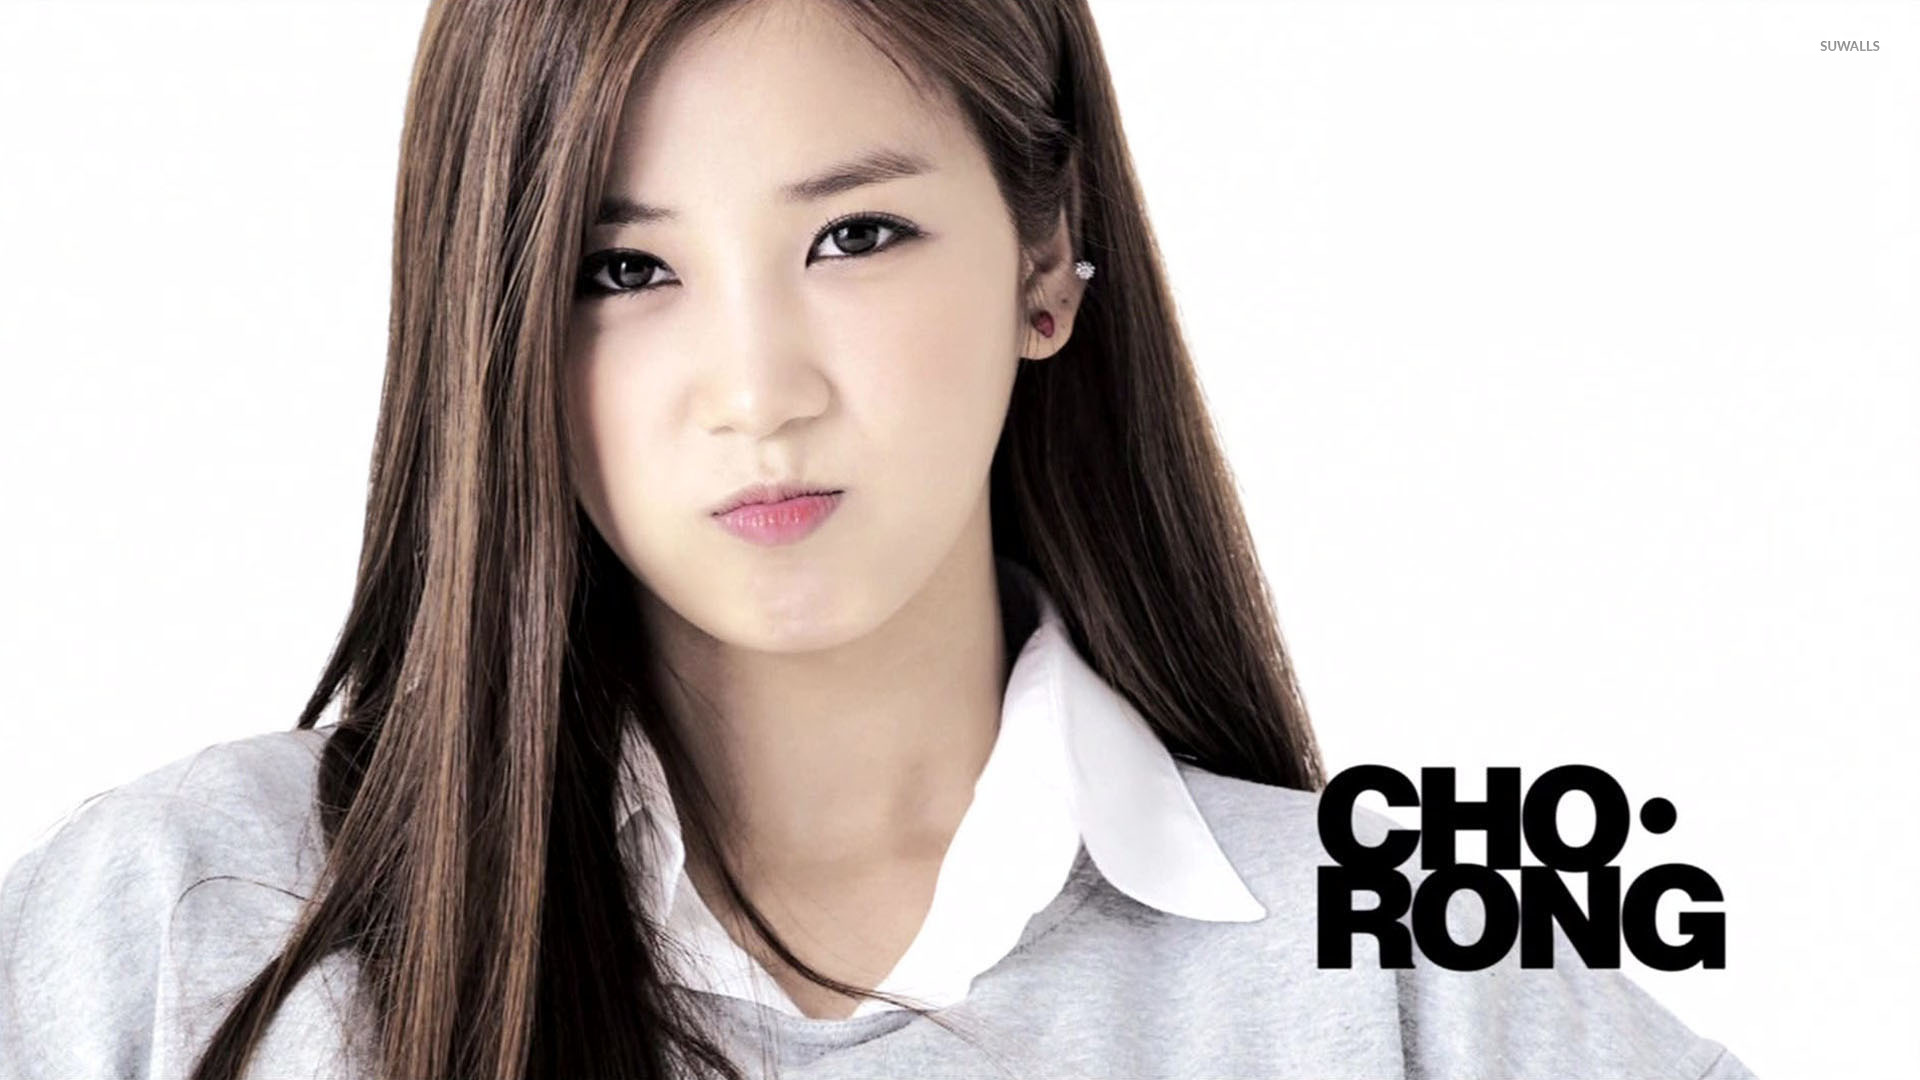 Park Cho rong   A Pink wallpaper   Music wallpapers   30276 1920x1080